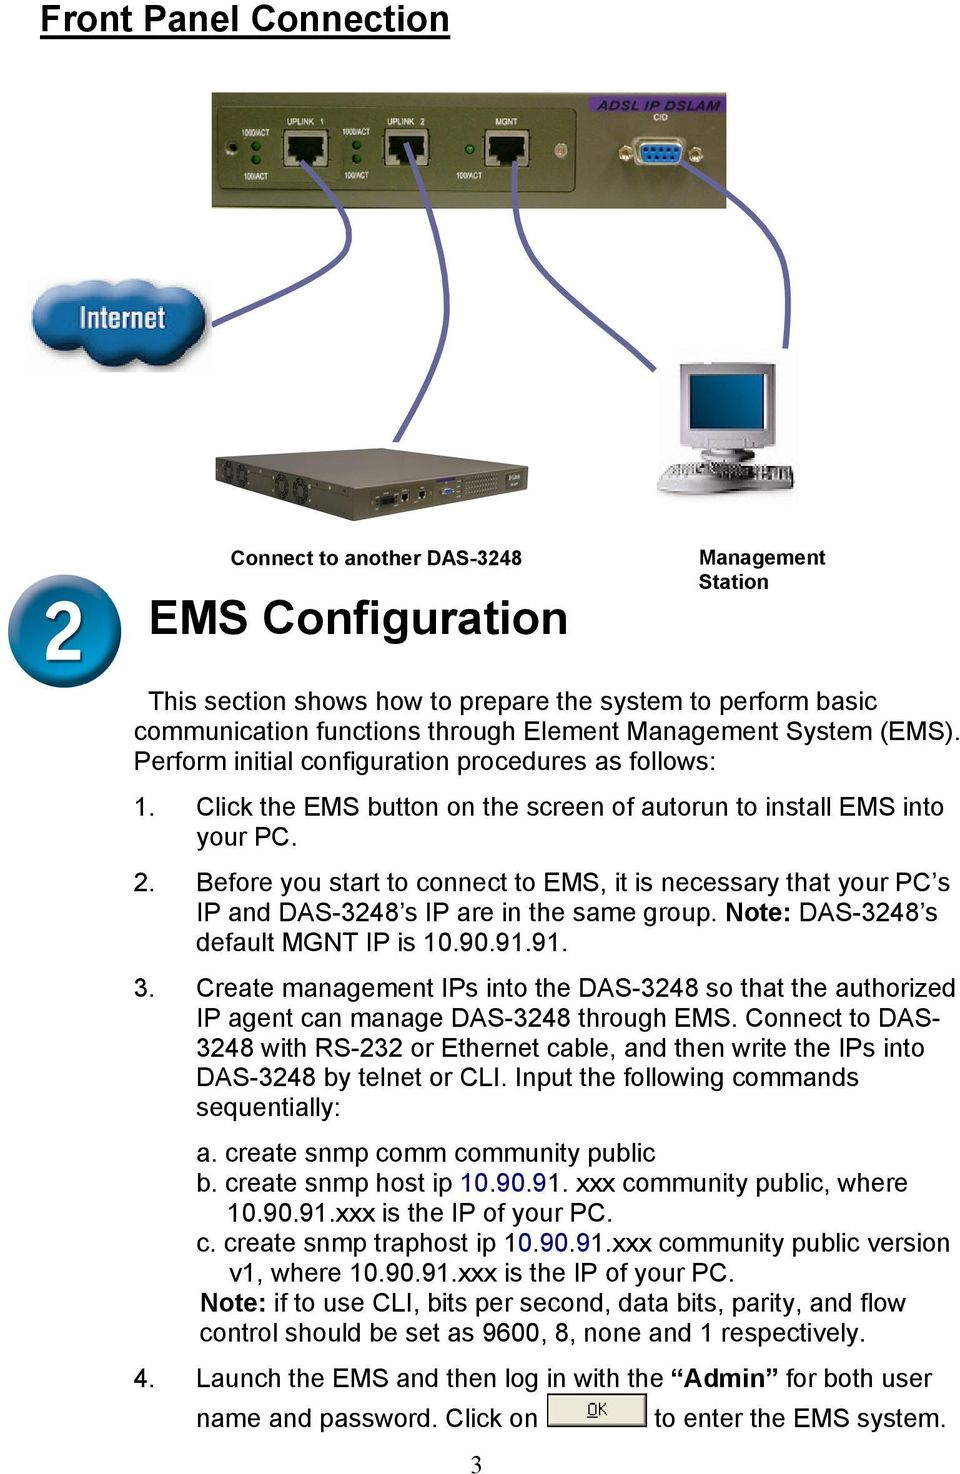 Before you start to connect to EMS, it is necessary that your PC s IP and DAS-3248 s IP are in the same group. Note: DAS-3248 s default MGNT IP is 10.90.91.91. 3.